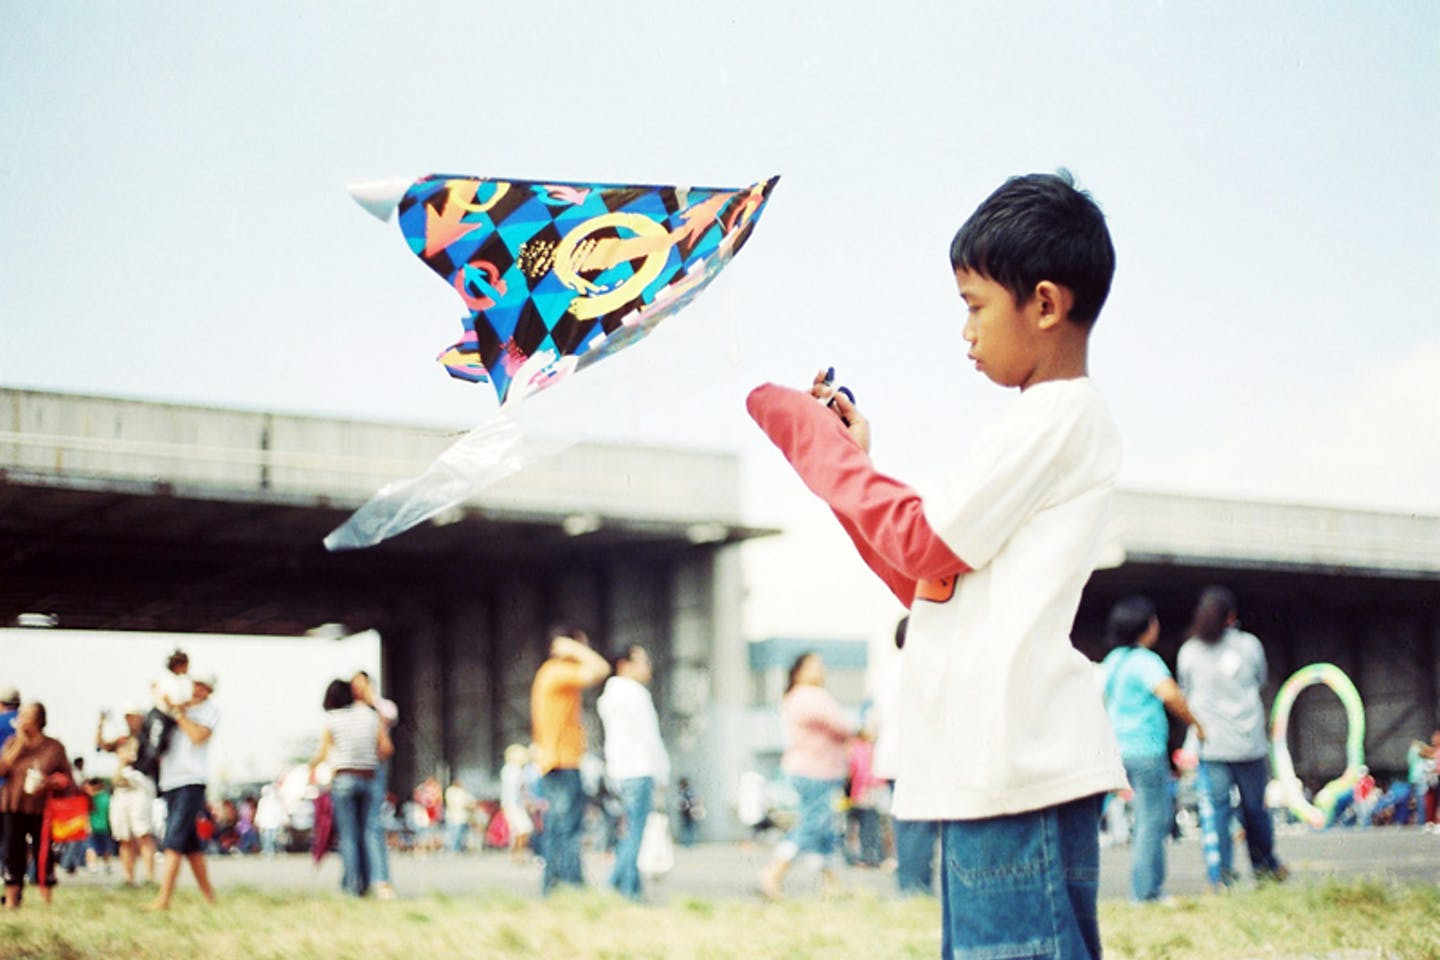 KID and his kite